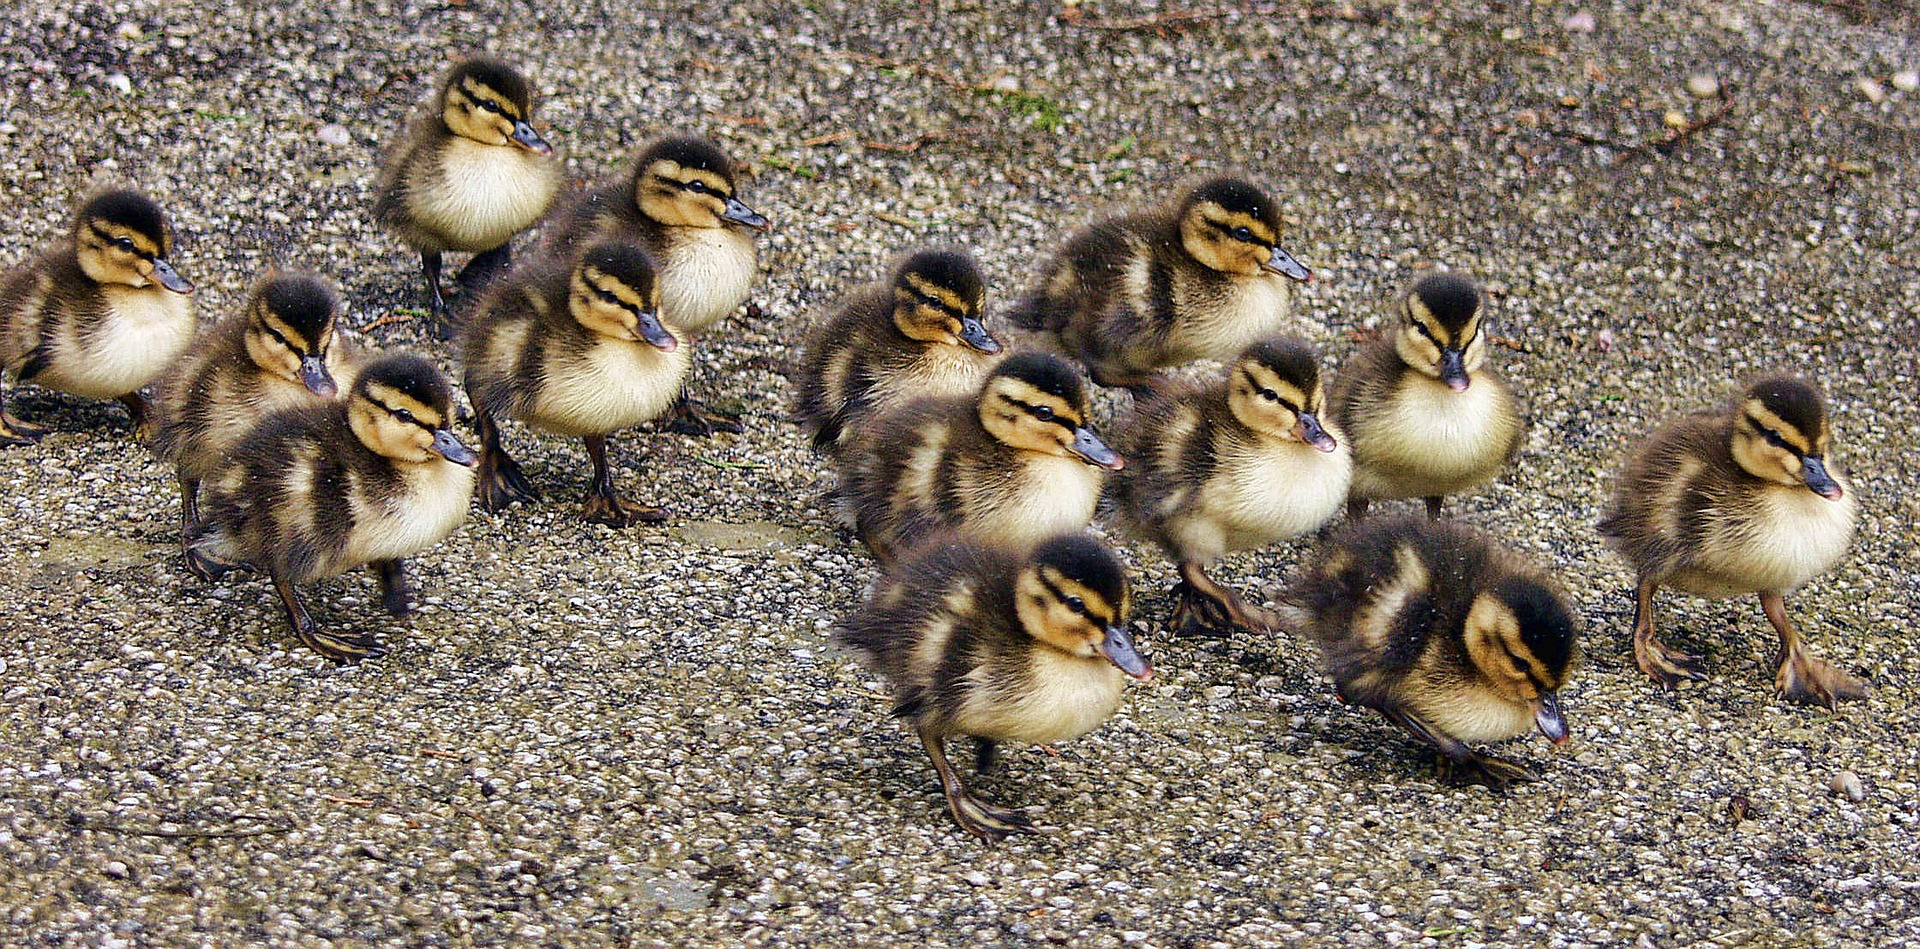 Baby ducks guide – 5 things you must know!